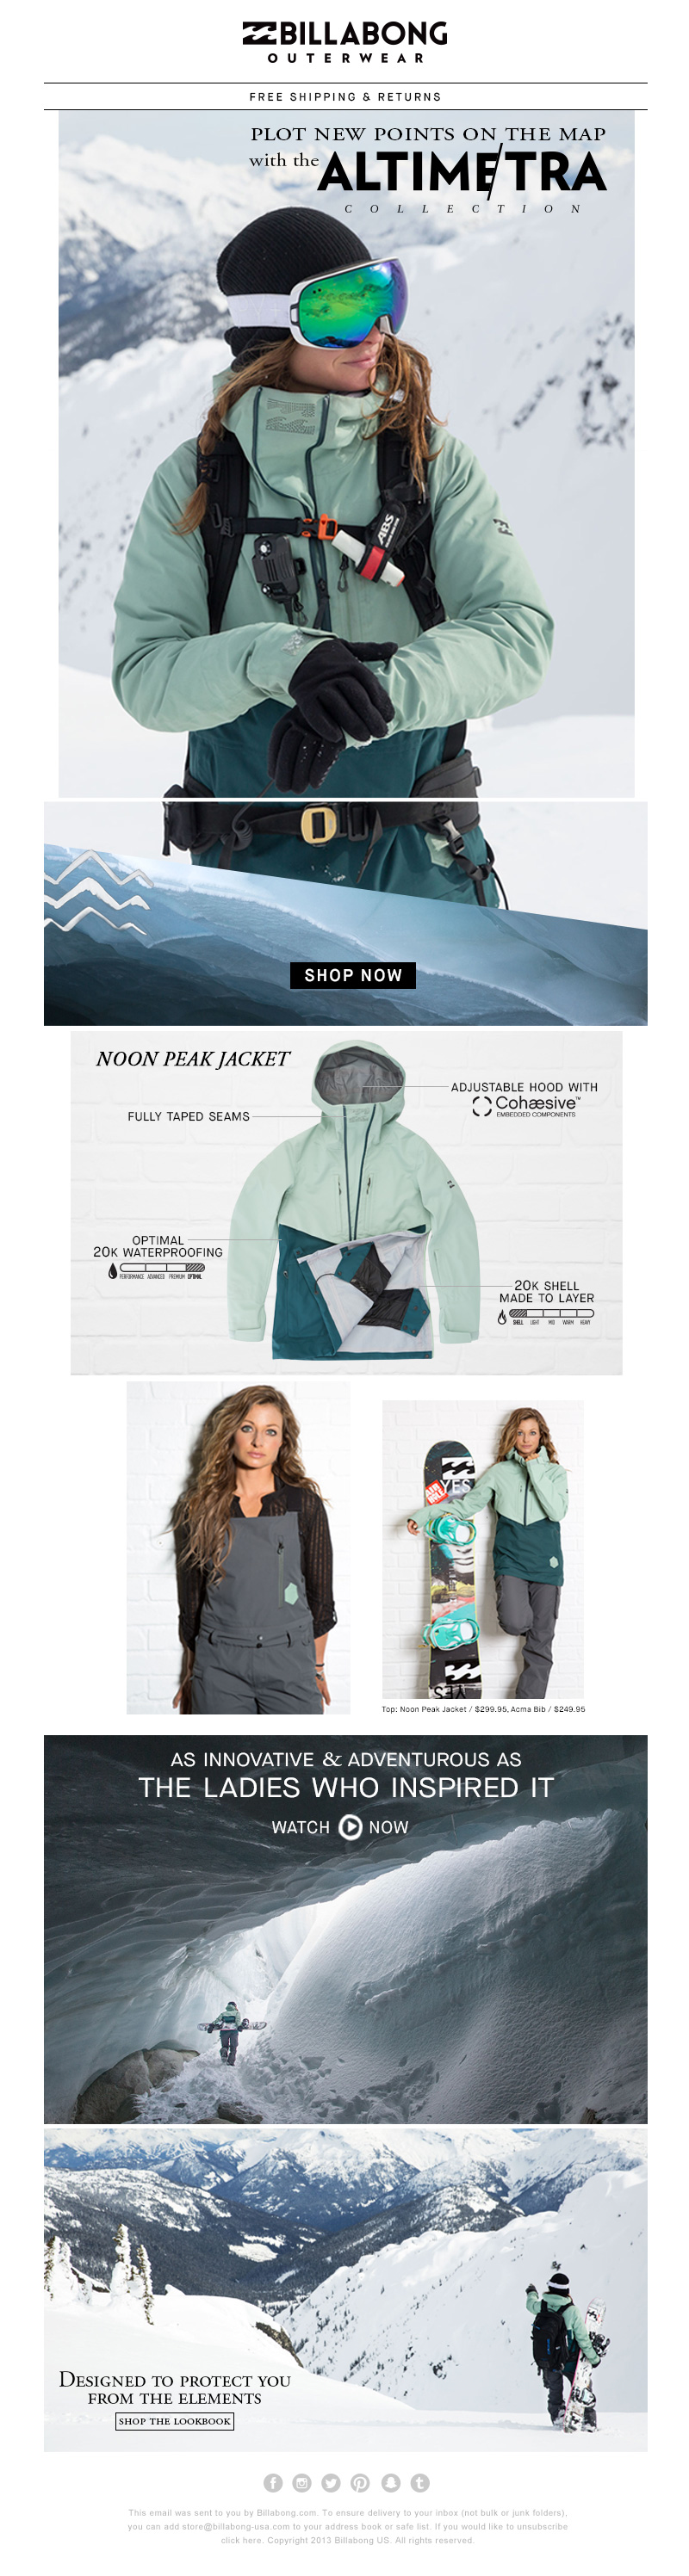 Billabong-Email-altimetra-collection-10.17.16.jpg